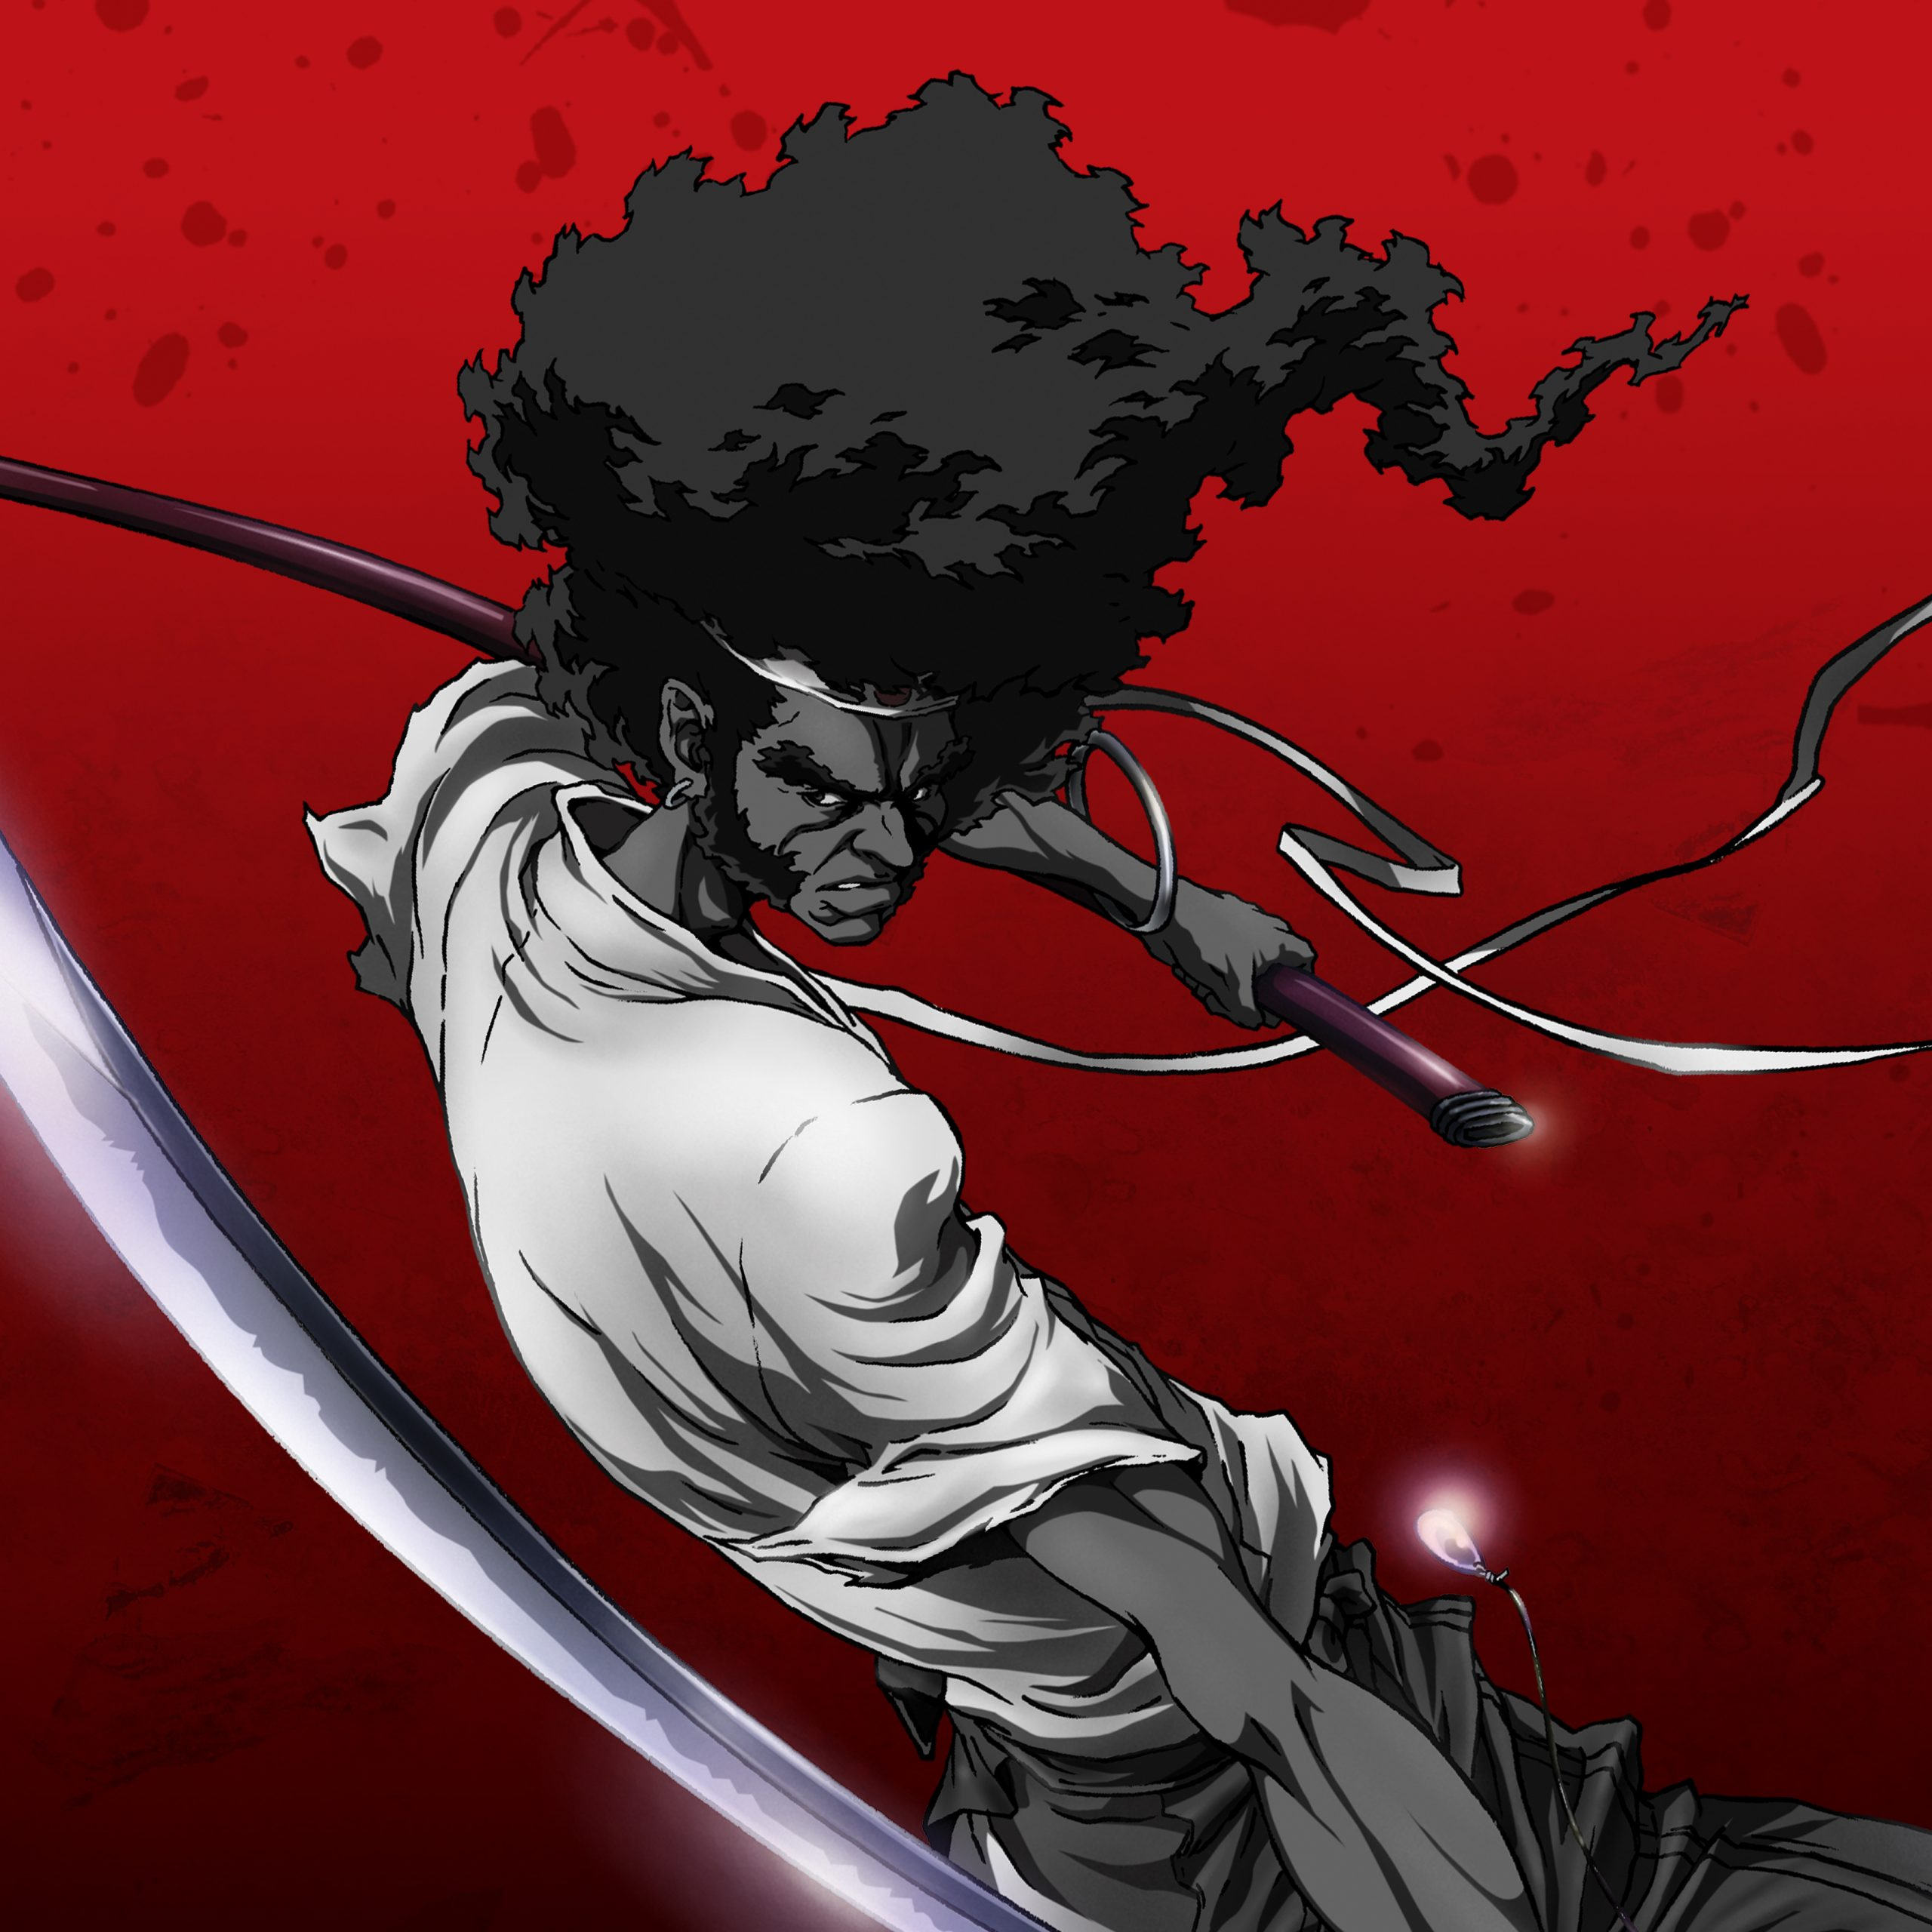 Afro swinging his sword as his Afro flows behind him.